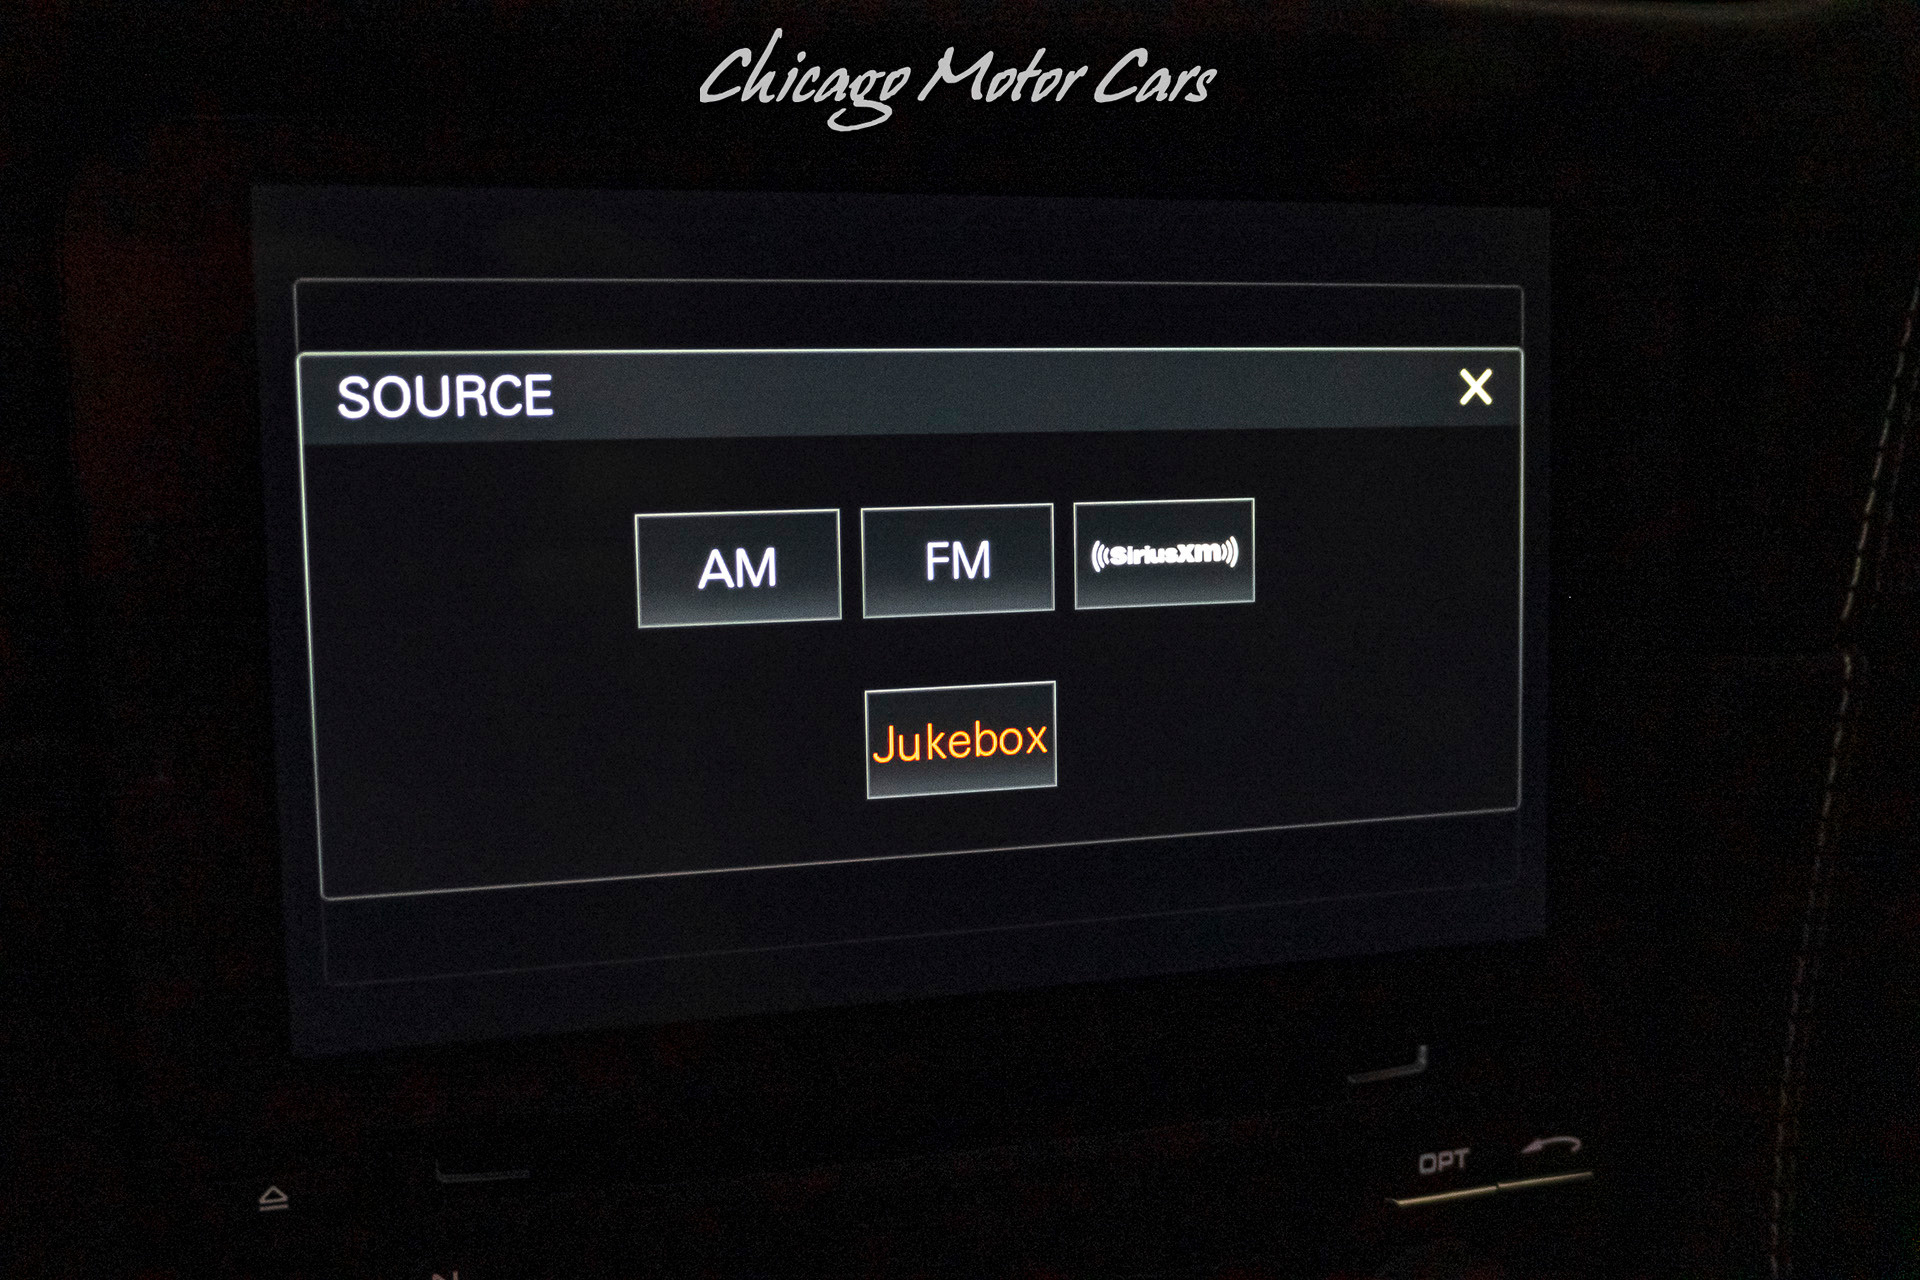 Used 2020 Porsche 718 Cayman Gt4 Only 189 Miles Manual Brand New Carbon Fiber For Sale Special Pricing Chicago Motor Cars Stock 17113a